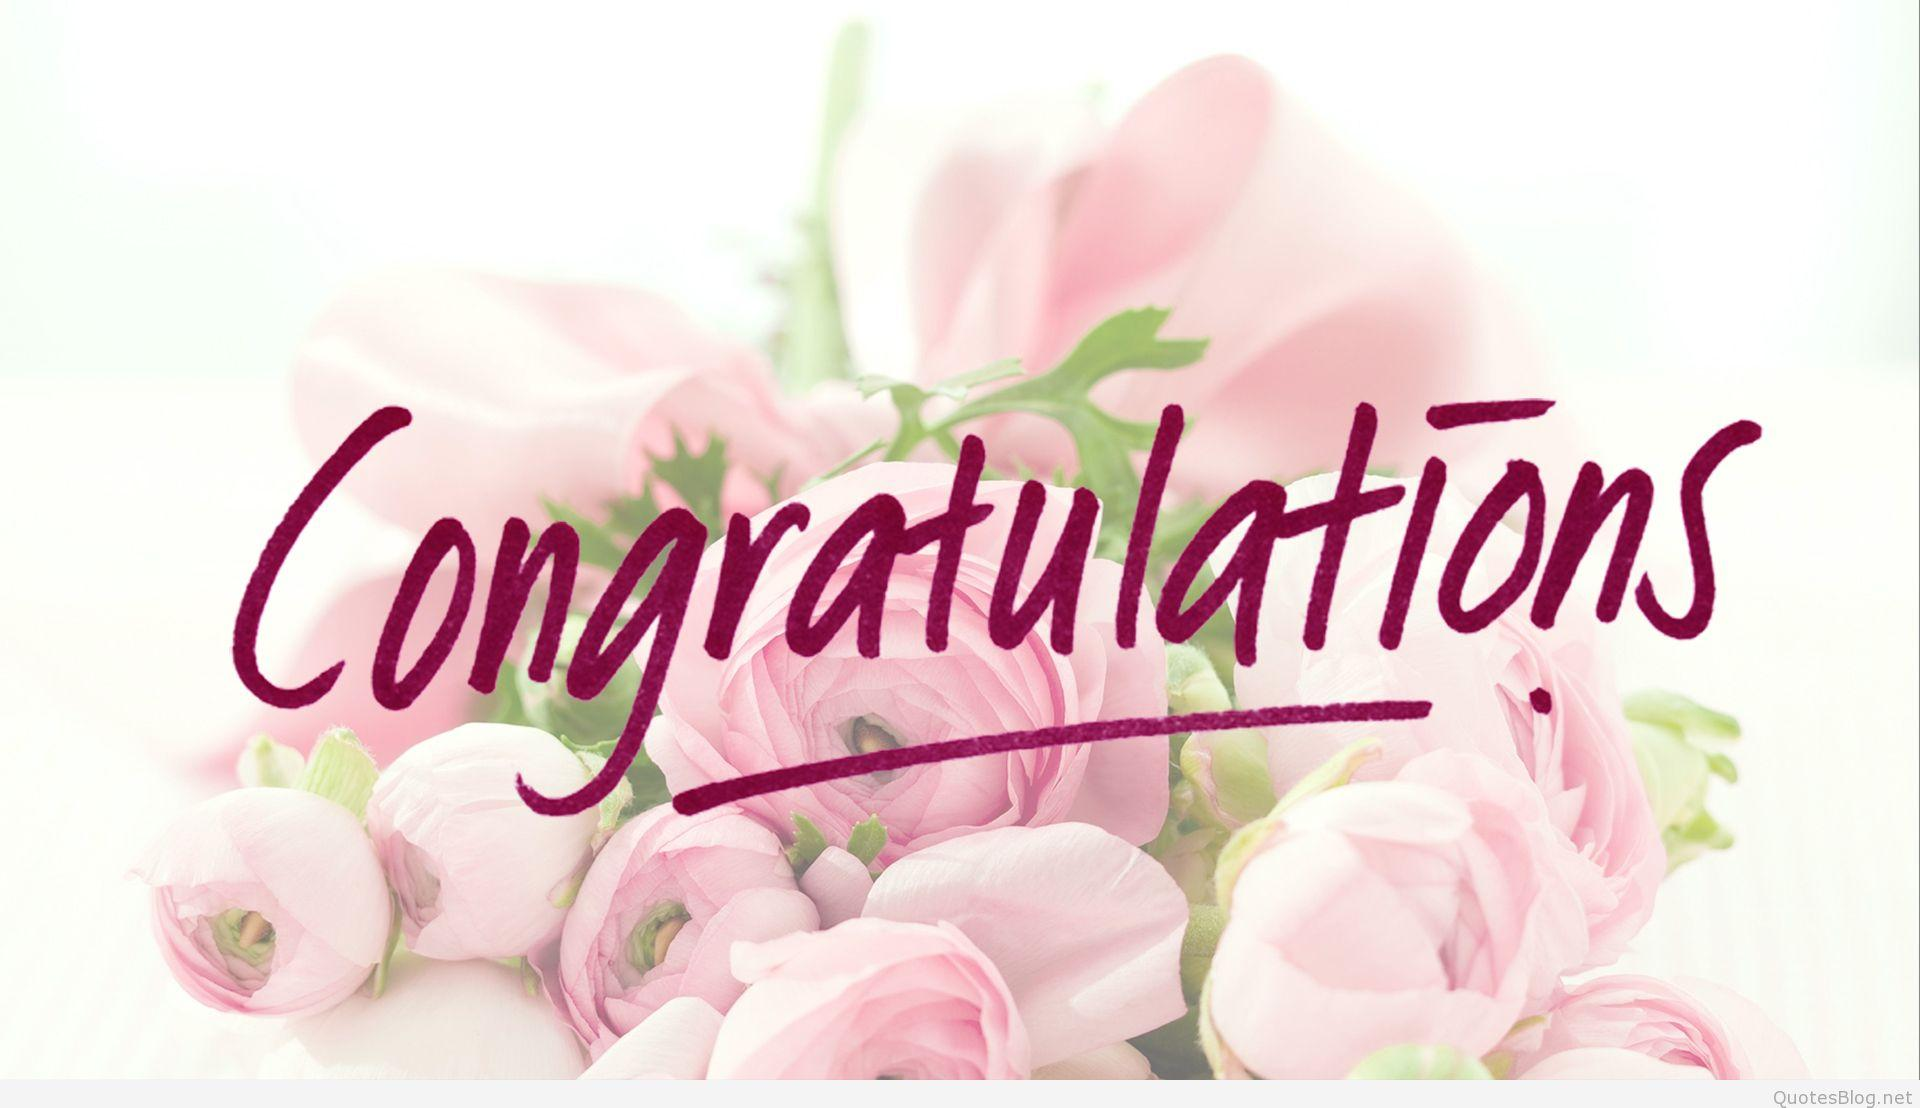 Congratulation Images Free With Flower In HD.